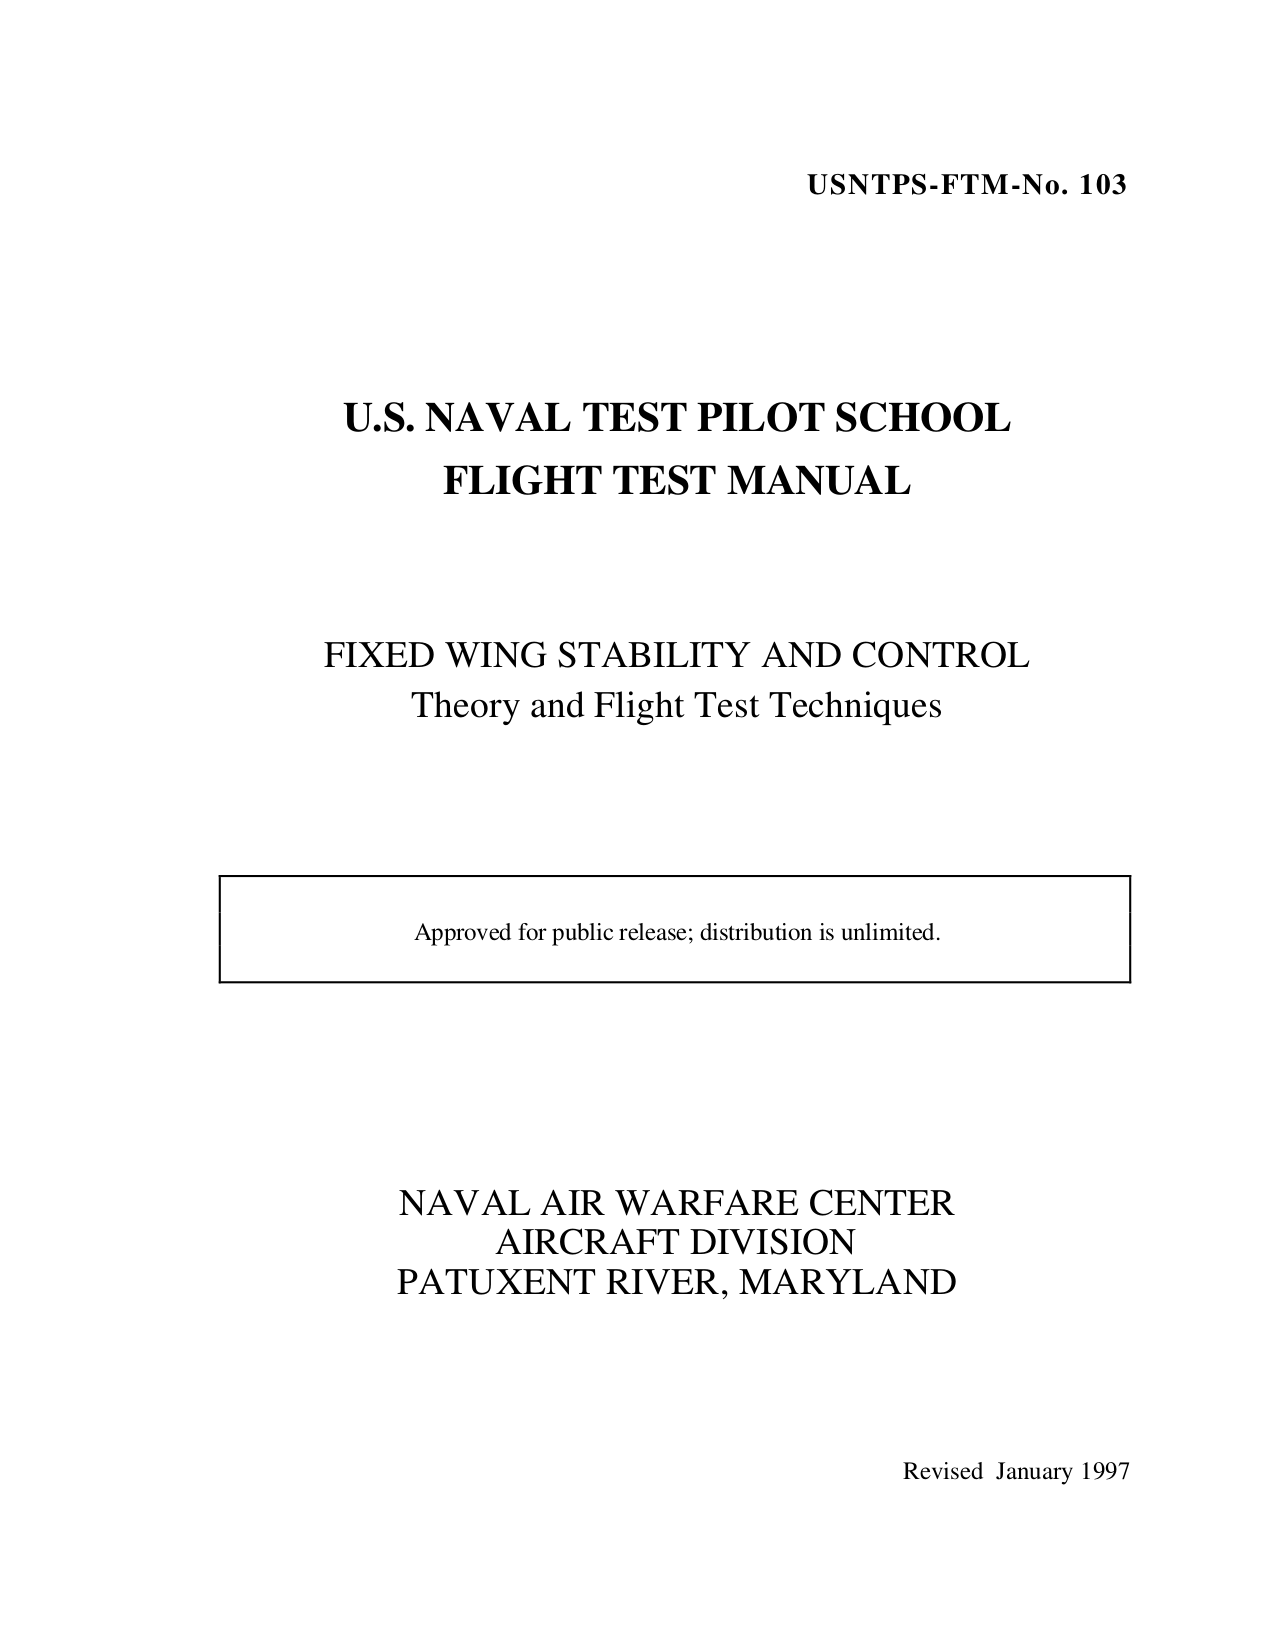 pdf for Supersonic TV SC-335 manual